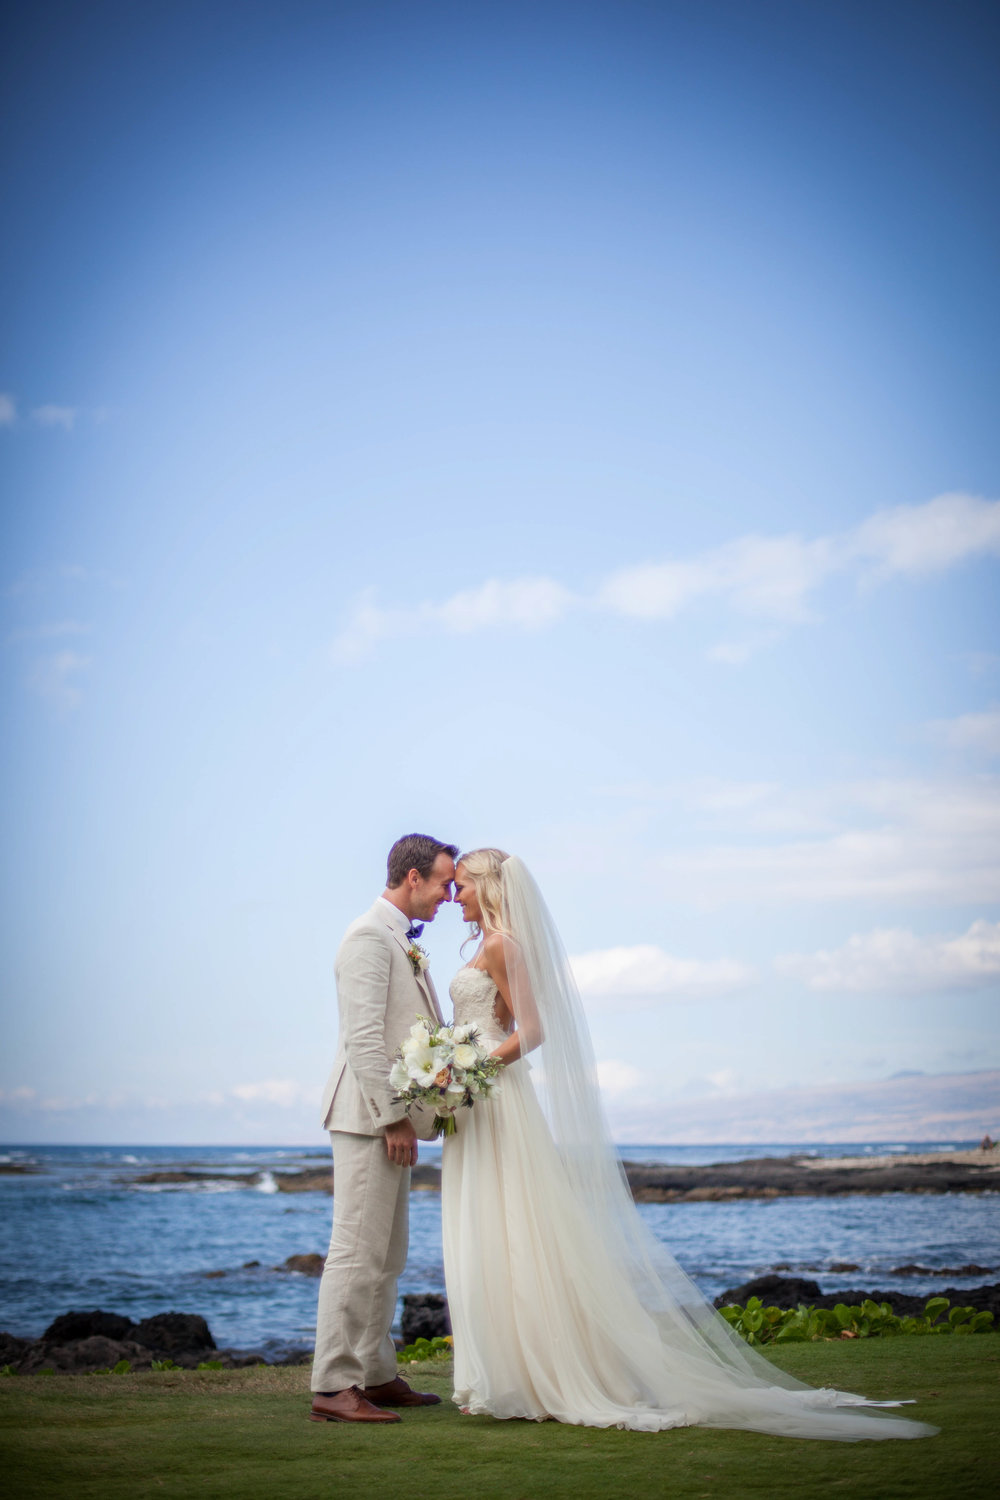 big island hawaii mauna lani resort wedding © kelilina photography 20160131150039-1.jpg